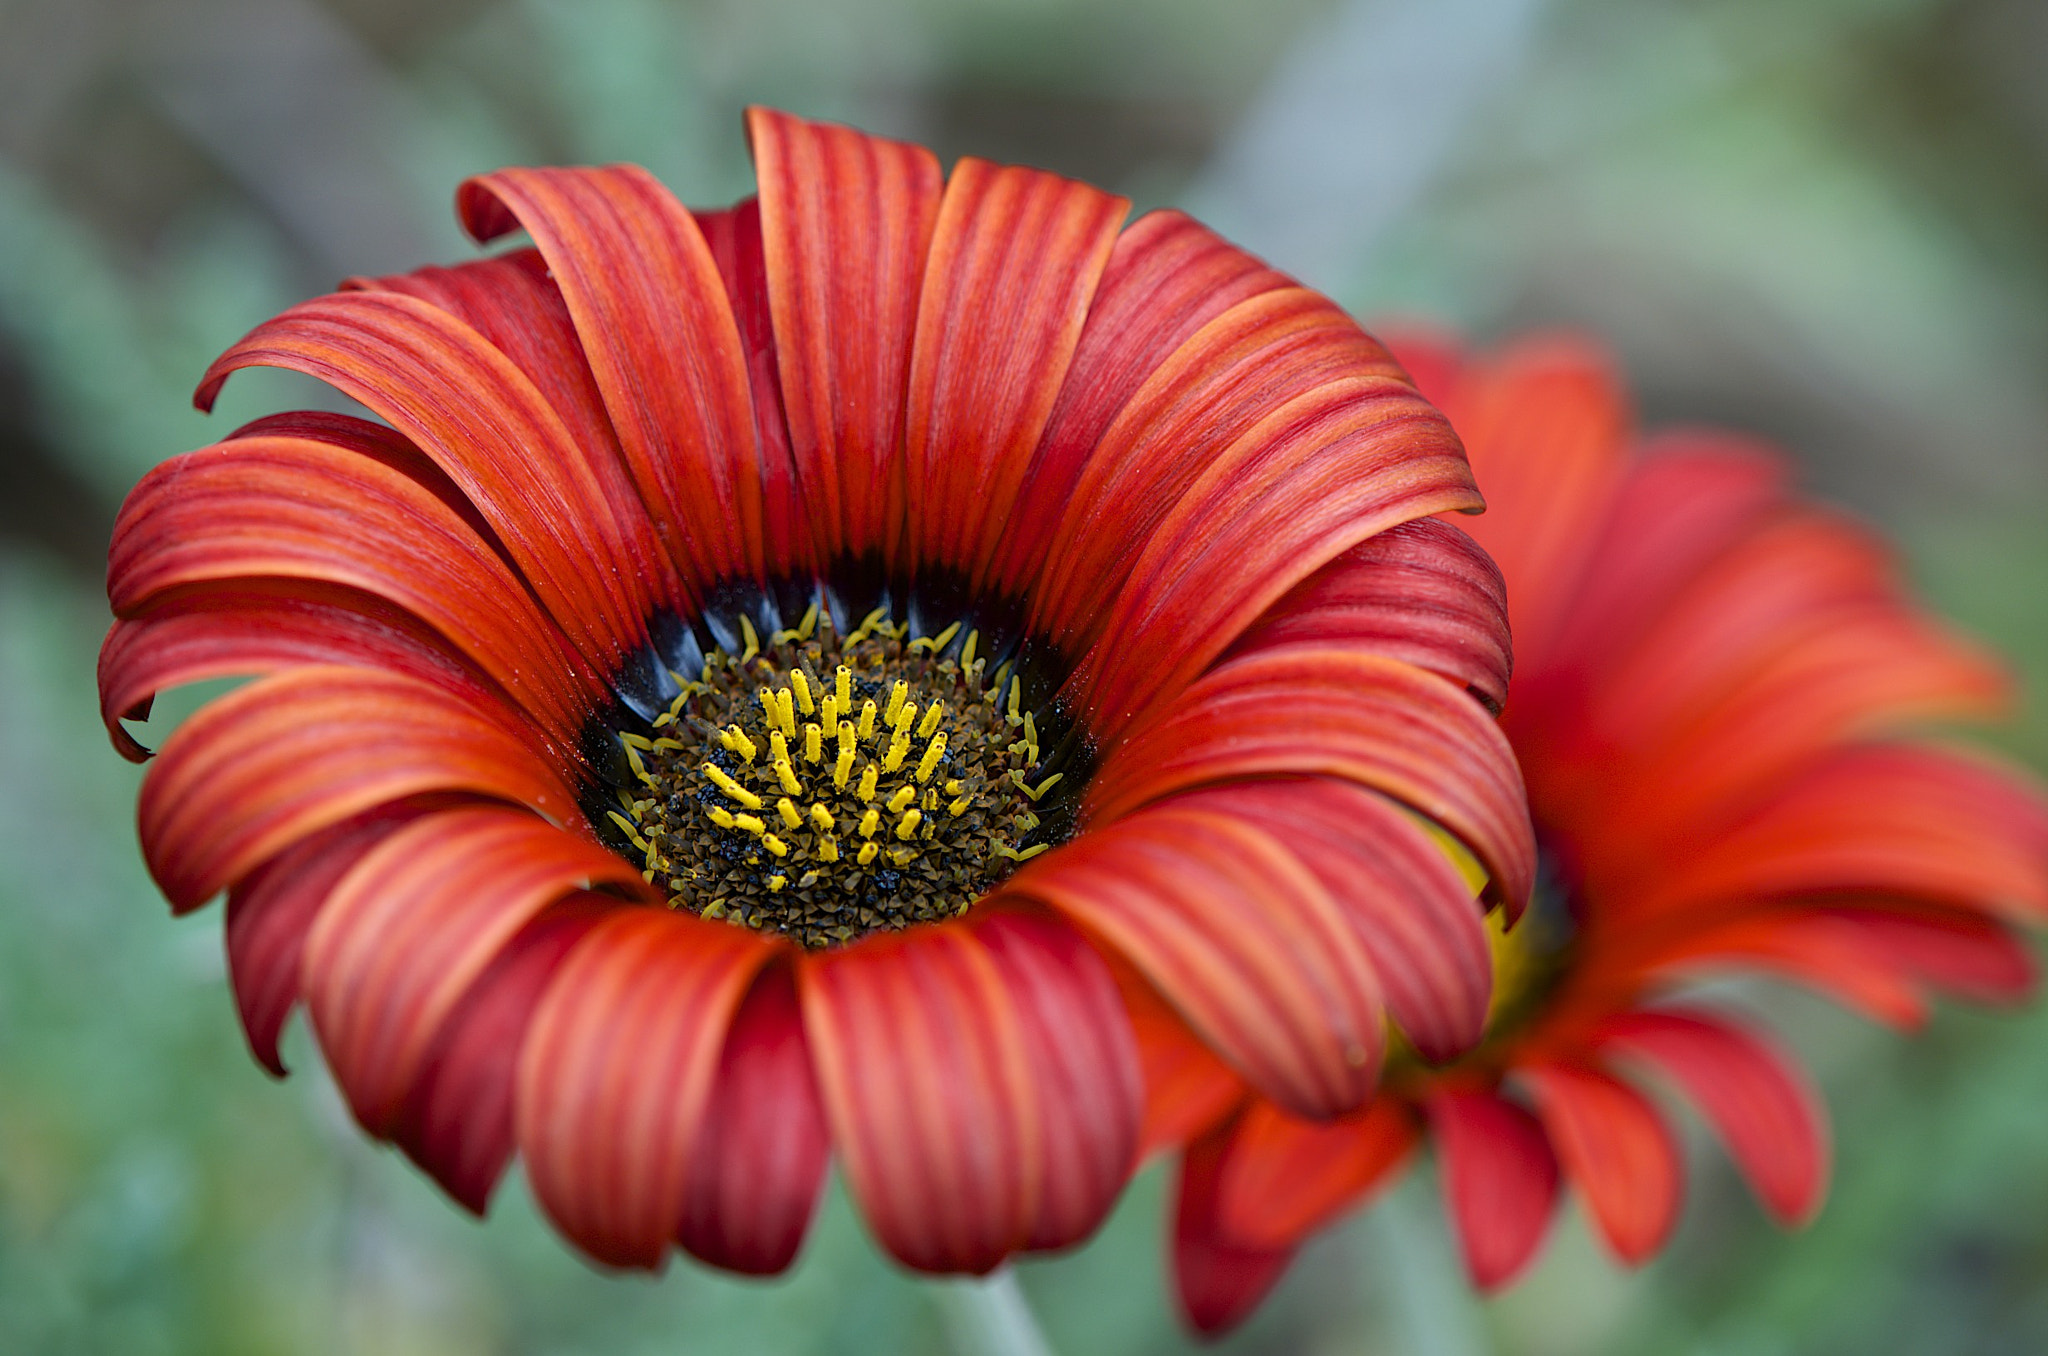 Photograph Red flower by Cécile Gall on 500px